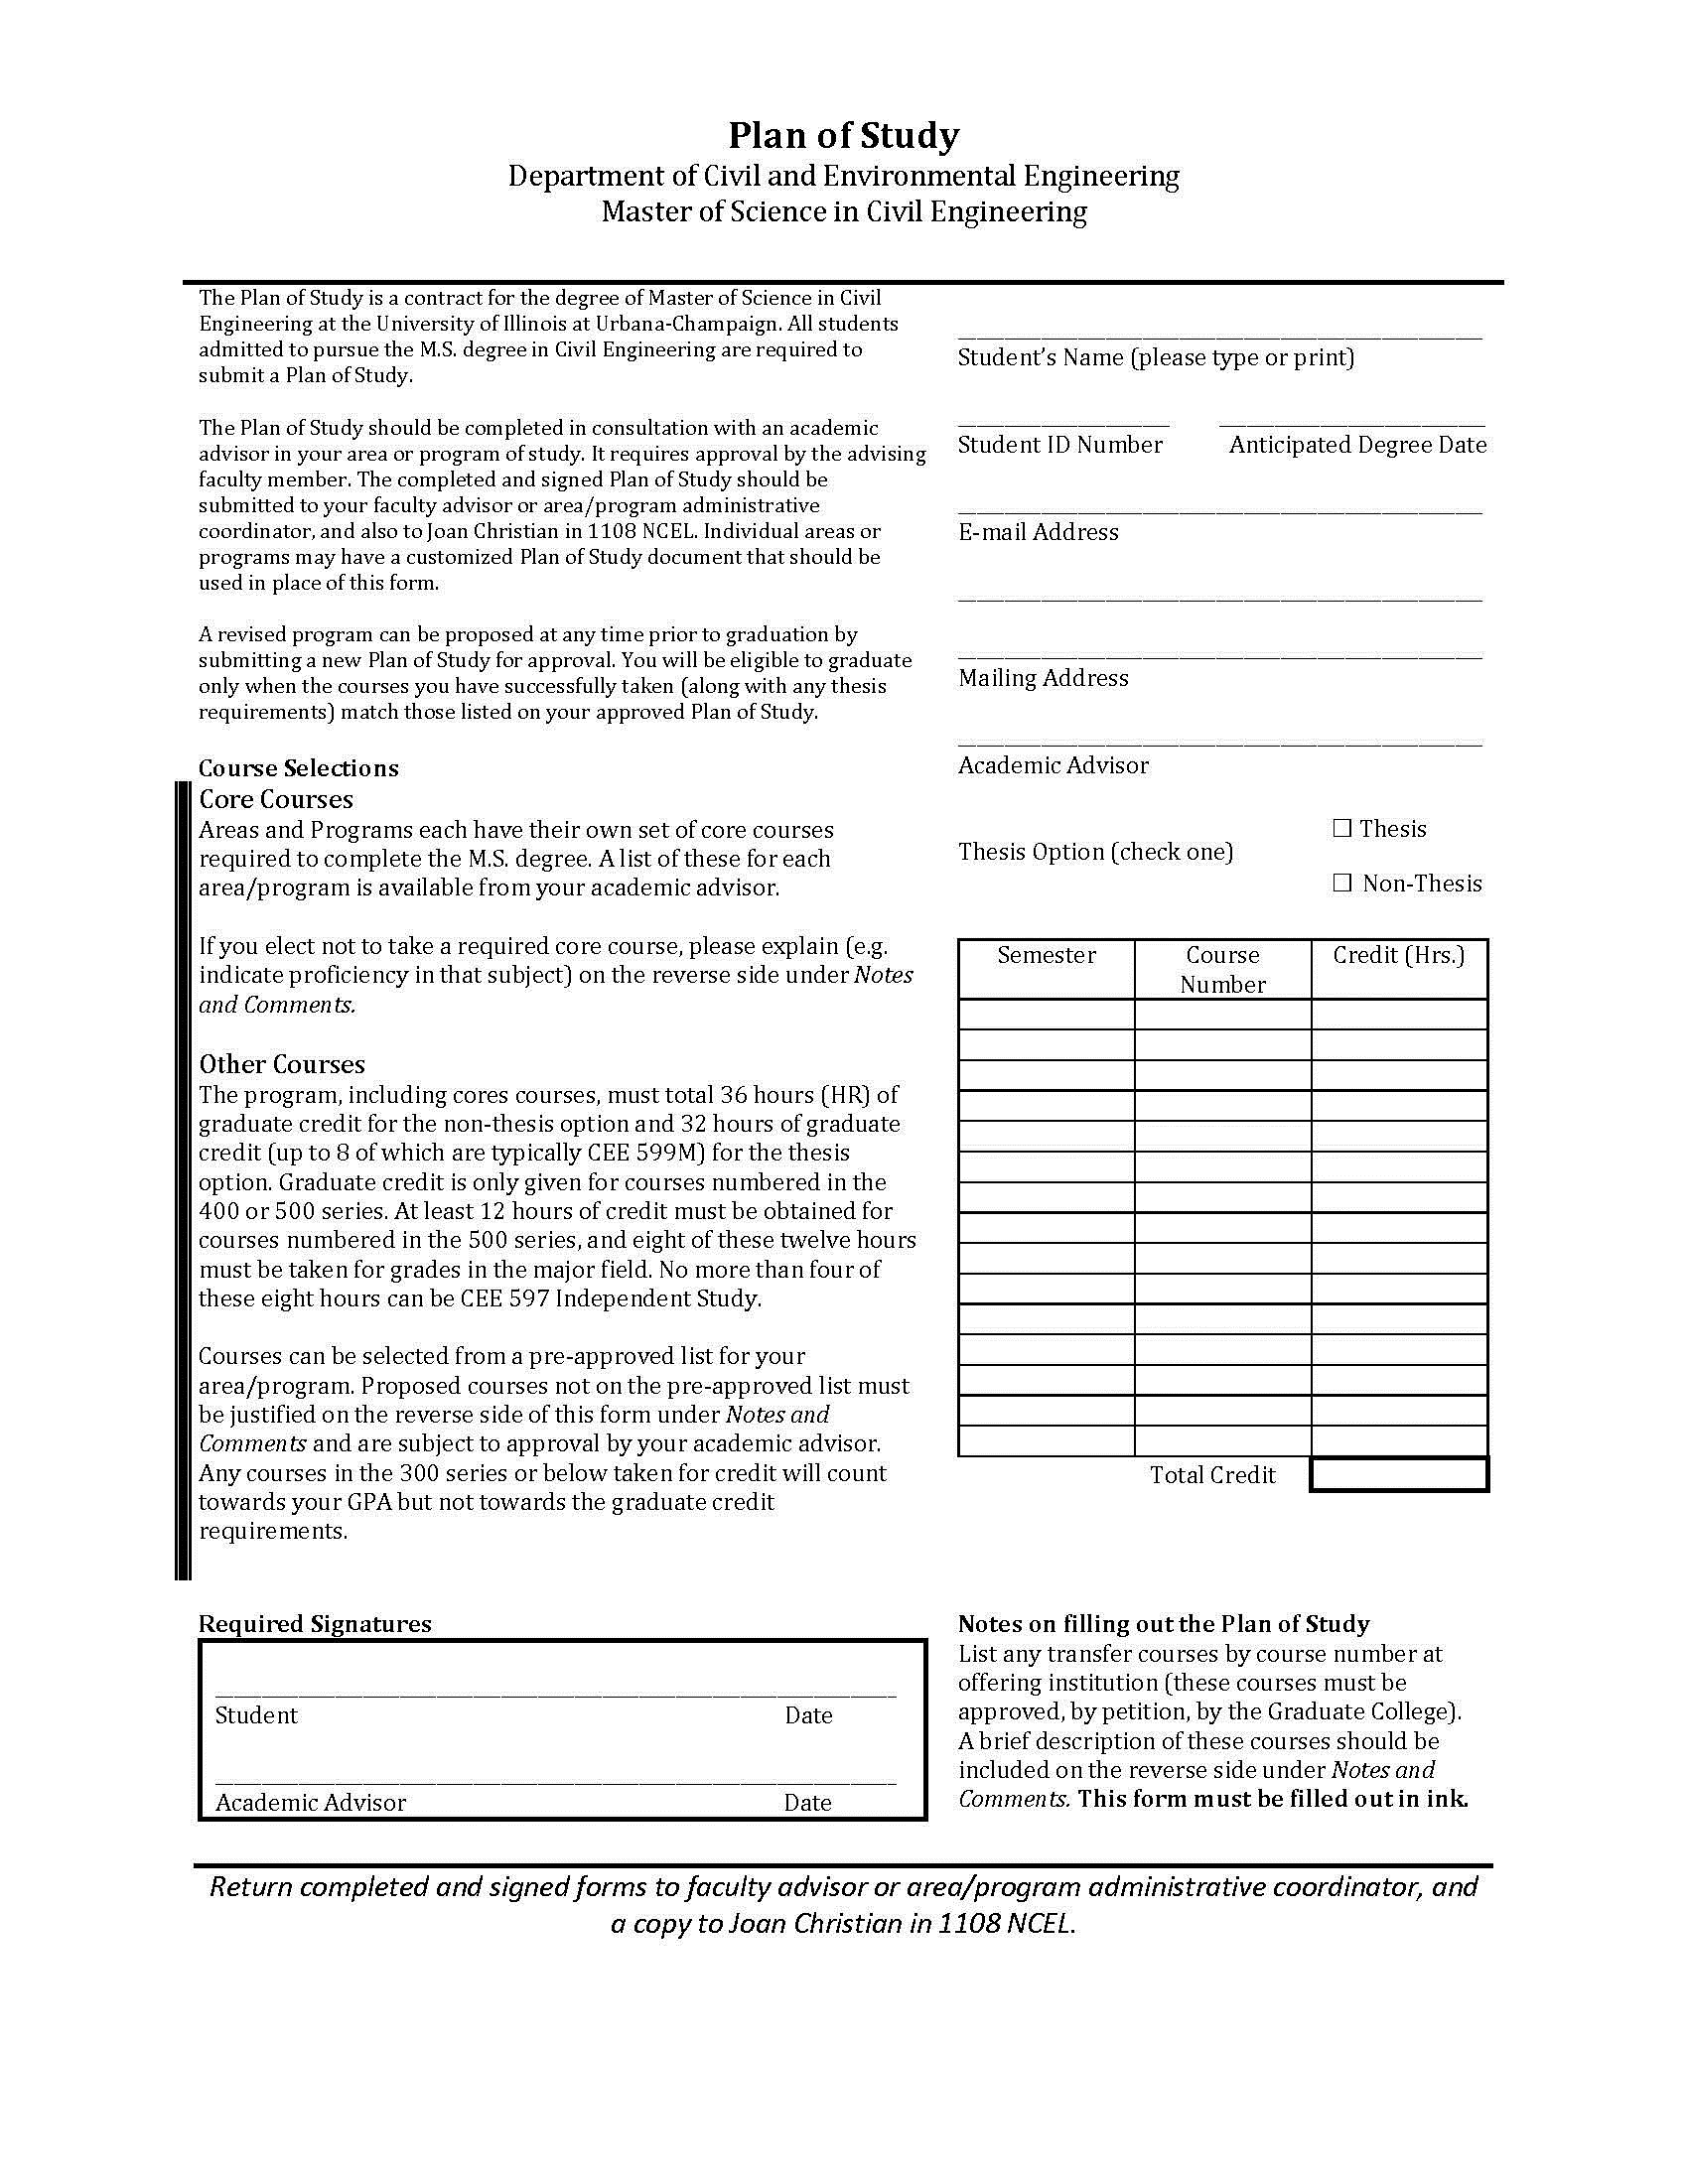 018 Plan Of Study Research Paper Awesome Form Format Apa Scientific Example Full